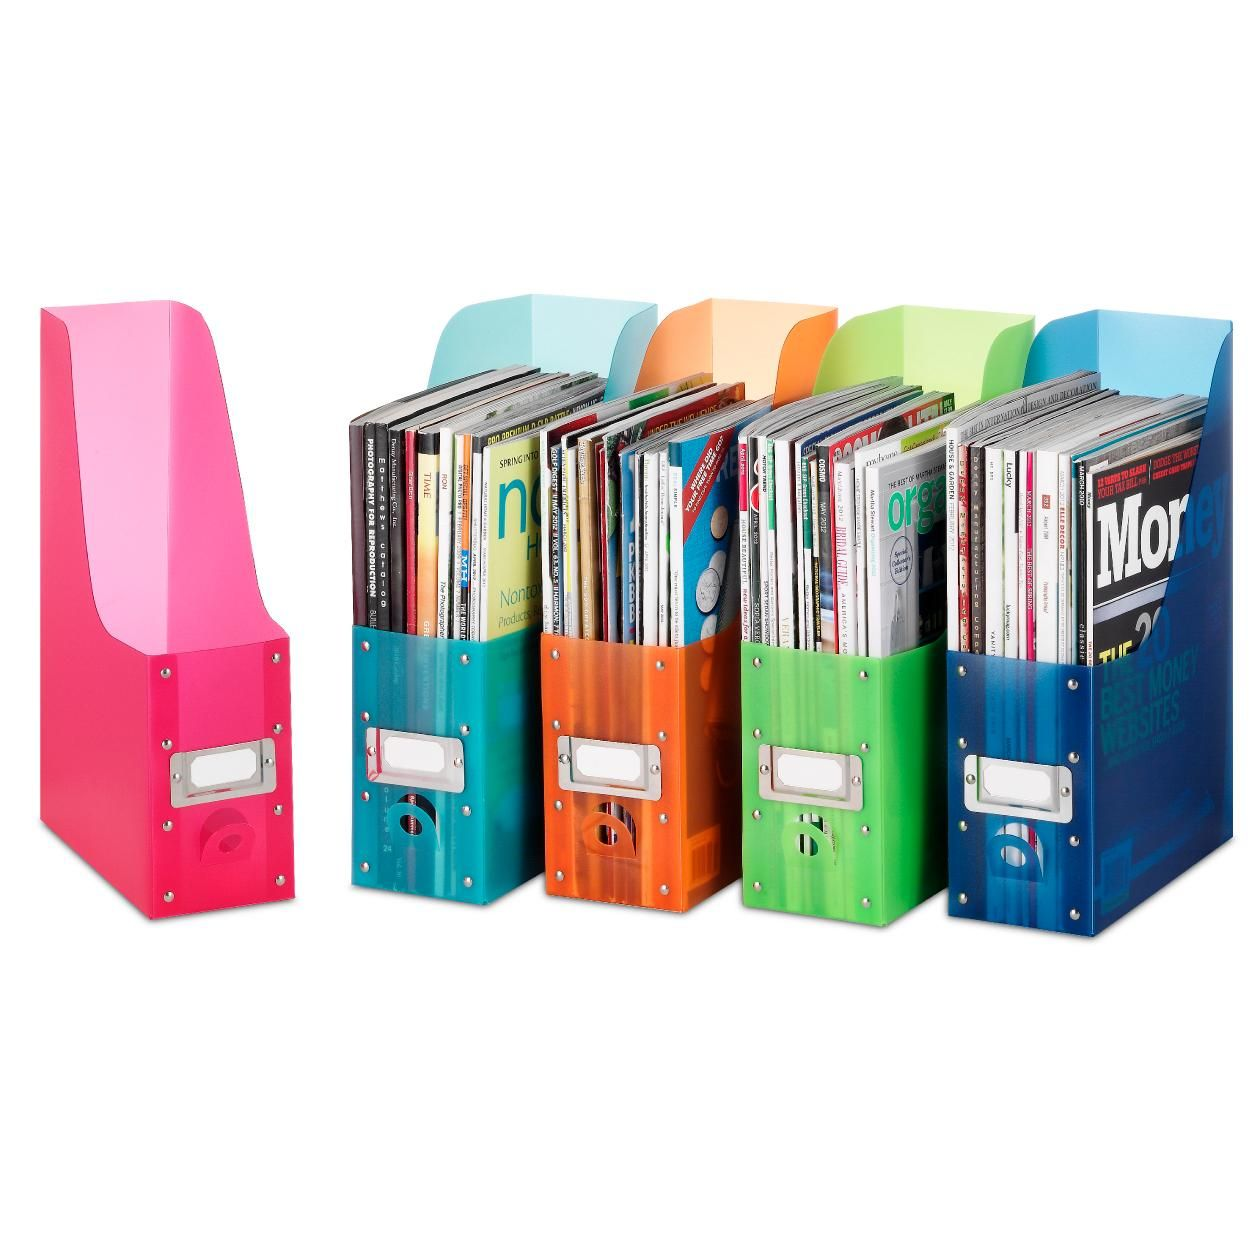 Superior Office Organization, Magazine File, Magazine Rack, Magazine Holder, Book  Bins, School